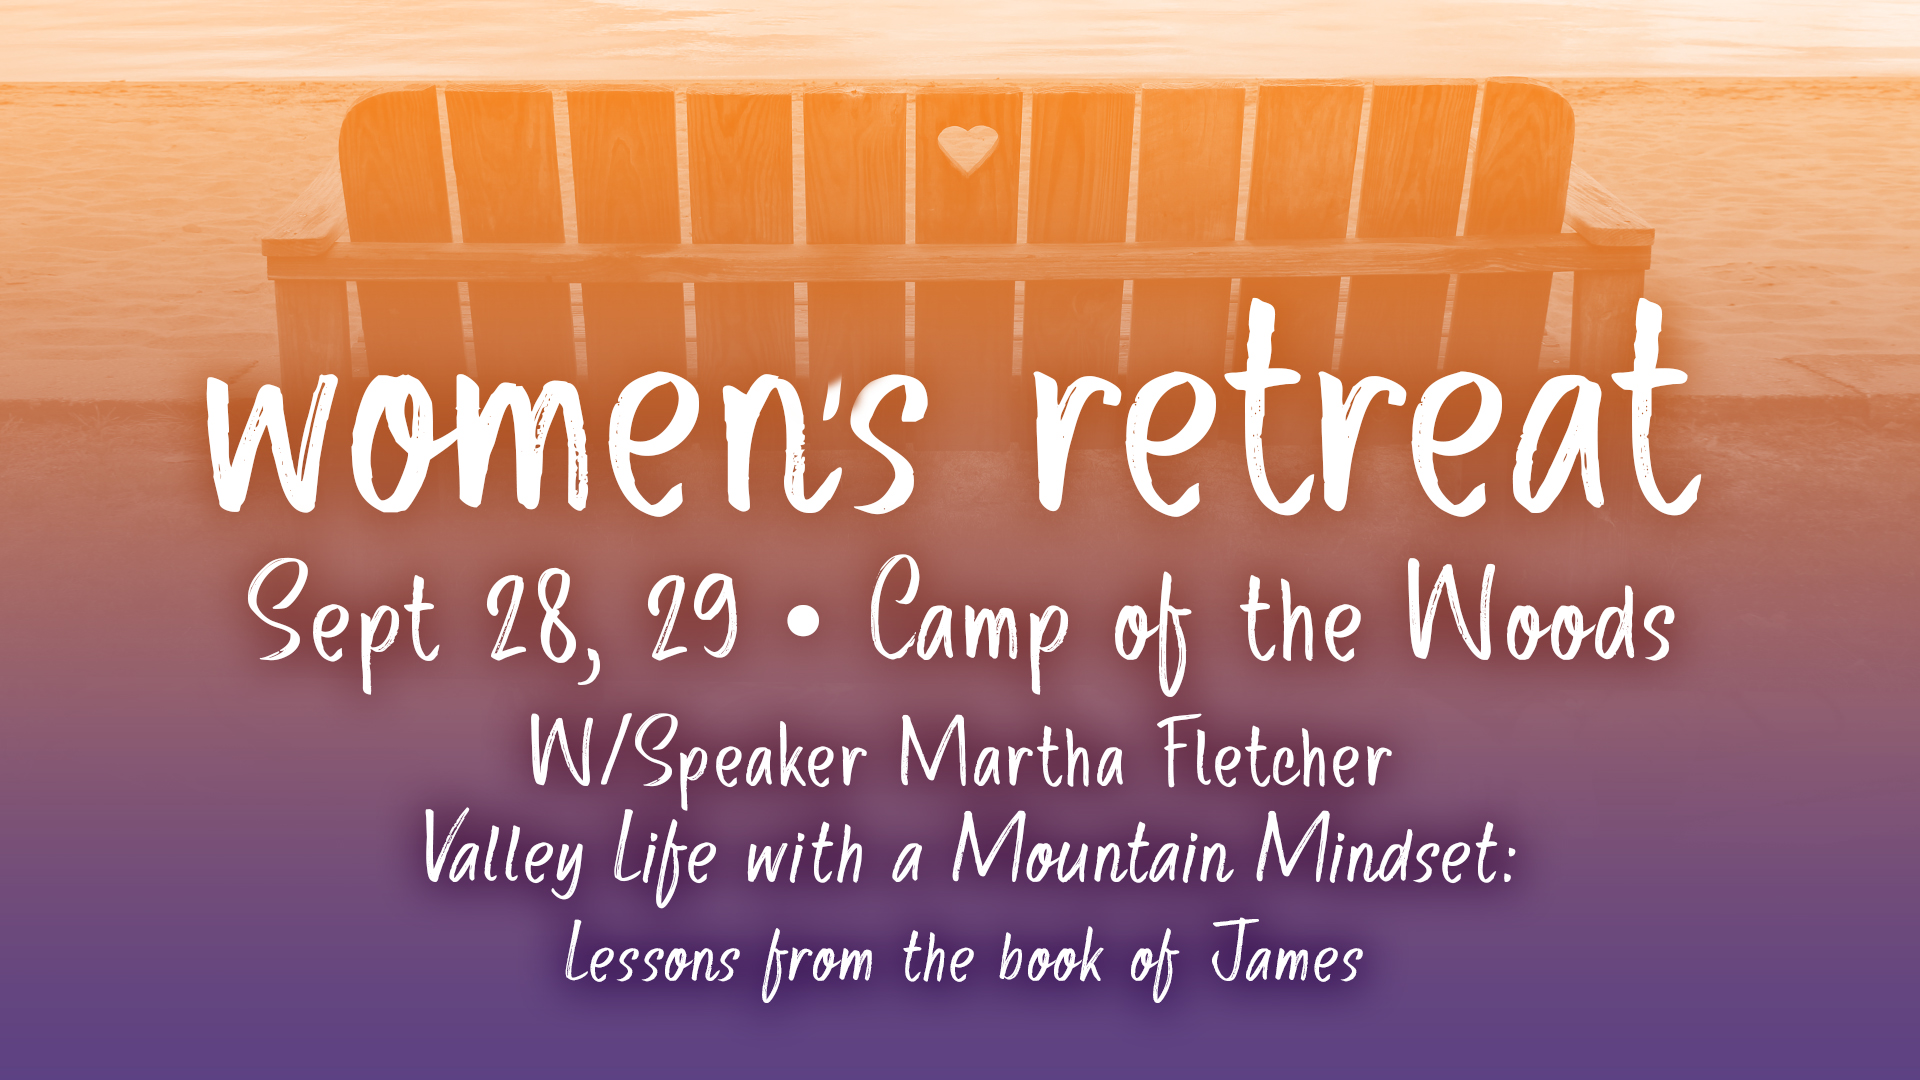 Saratoga Women's Fall Retreat: Valley Life with a Mountain Mindset